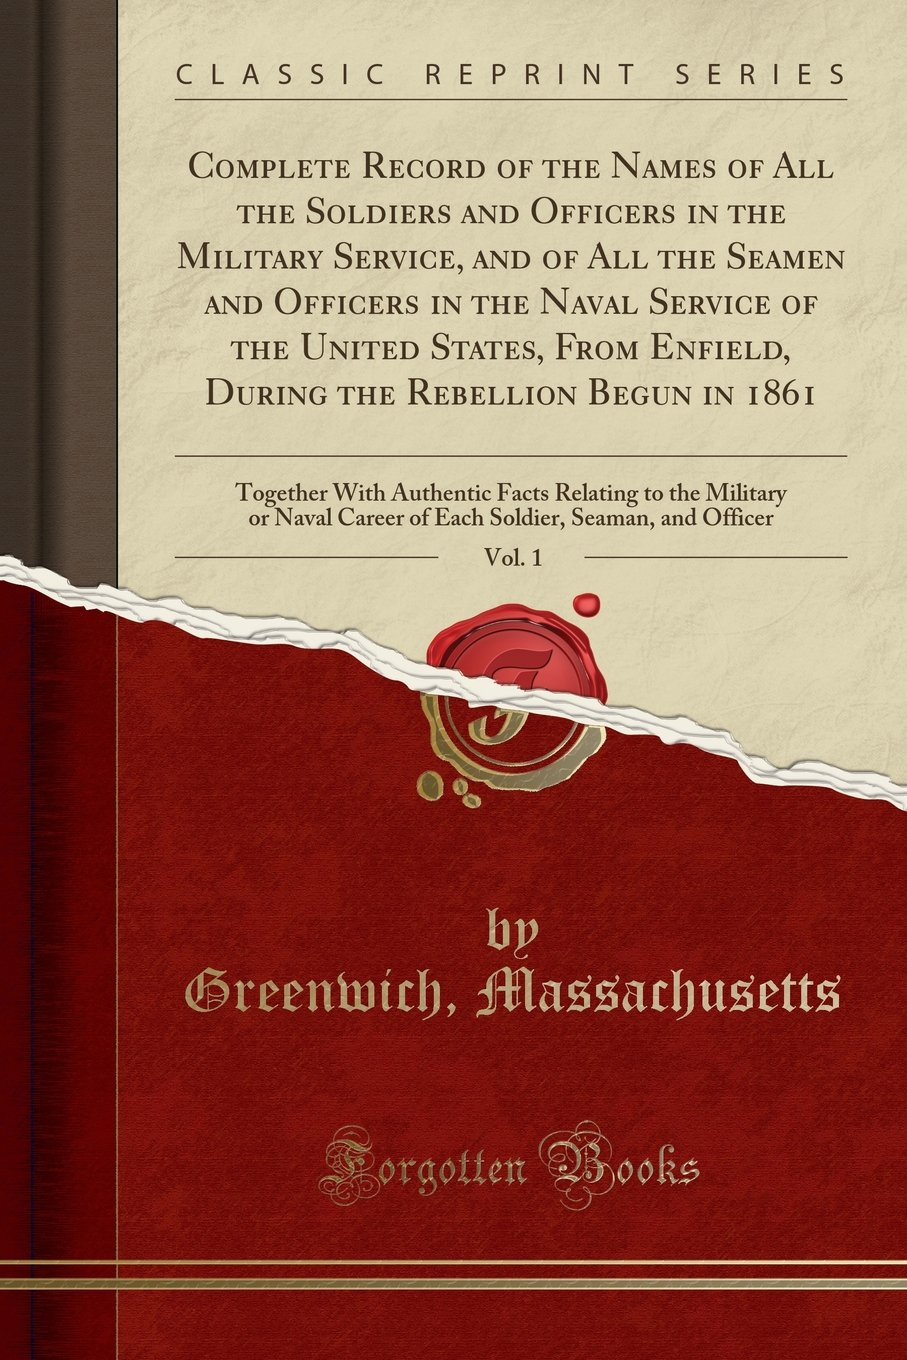 Complete Record of the Names of All the Soldiers and Officers in the Military Service, and of All the Seamen and Officers in the Naval Service of the ... Vol. 1: Together With Authentic Facts Re pdf